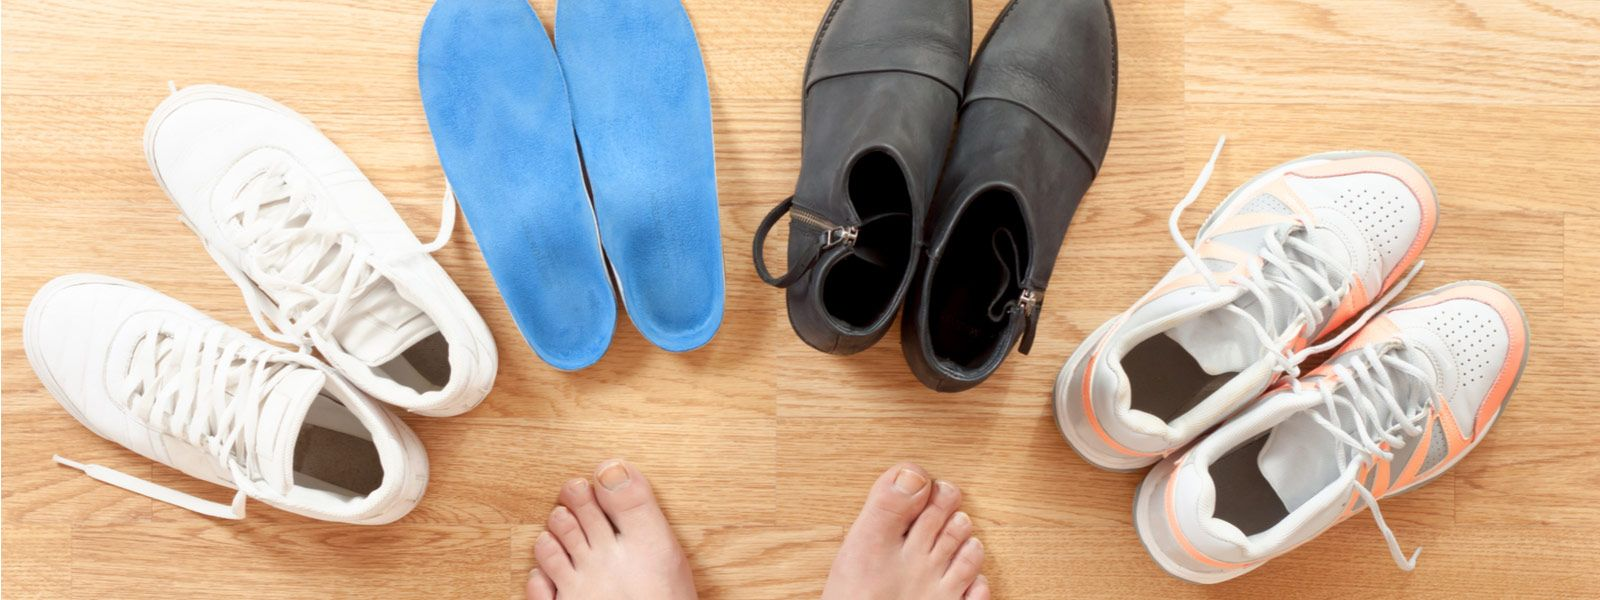 Orthotics-Melbourne-CBD